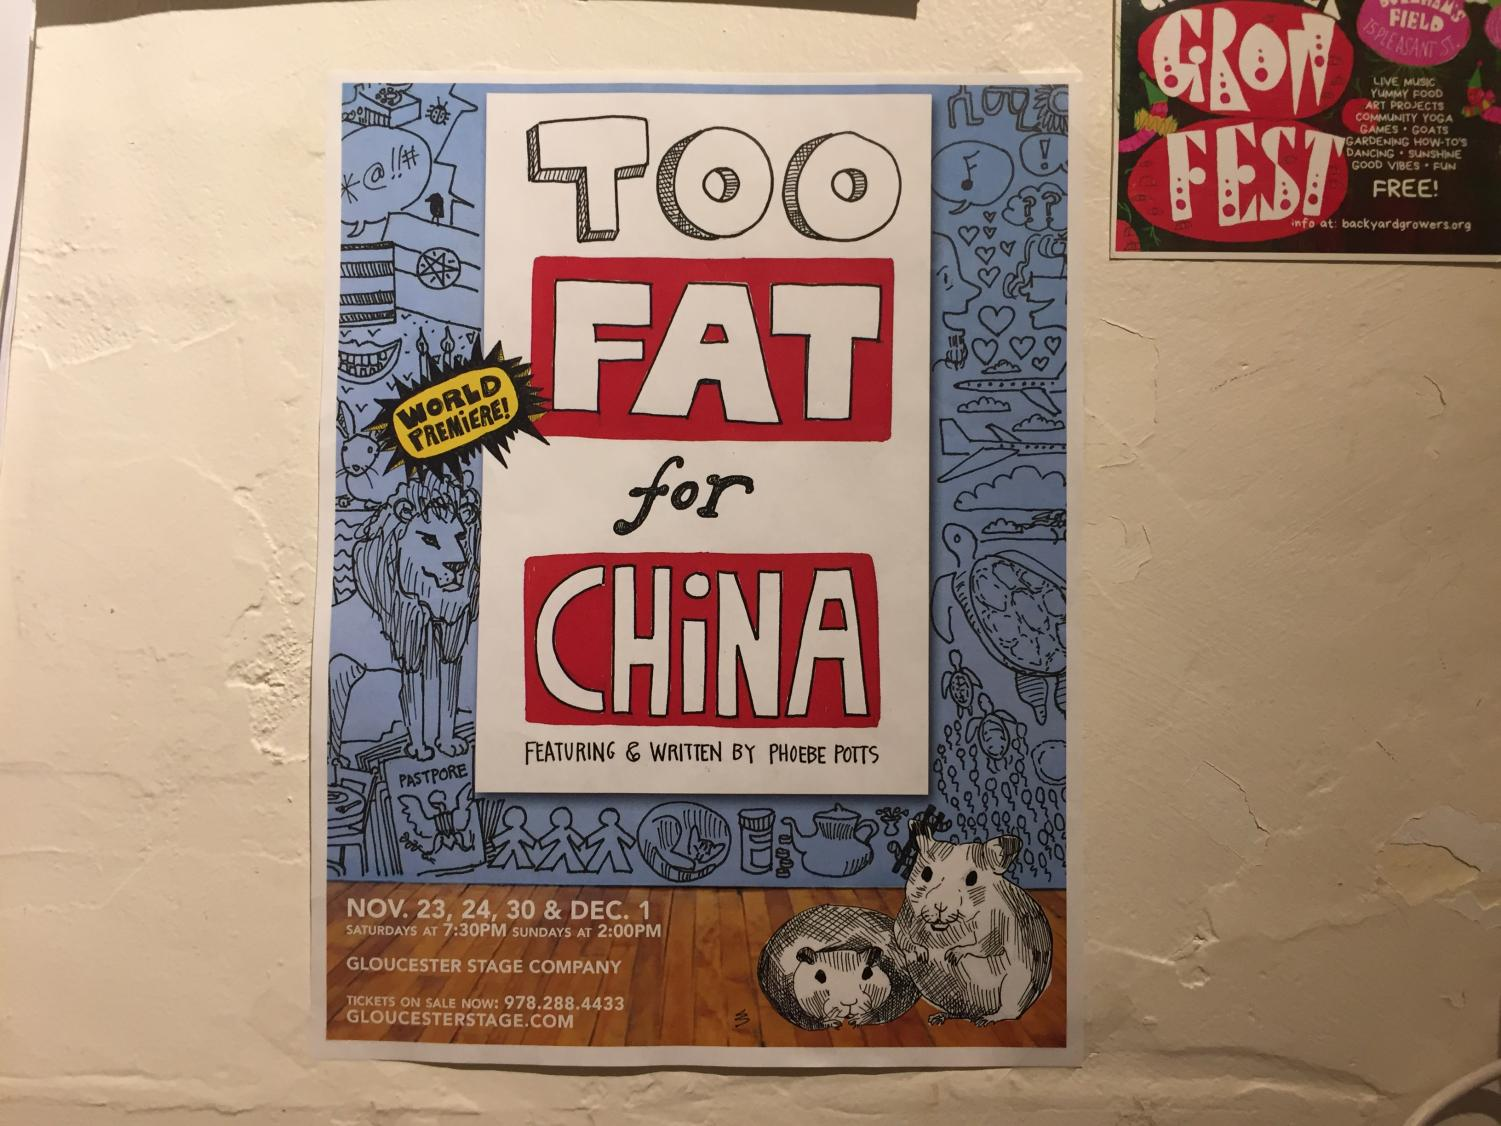 Poster advertising Potts' show features her own artwork.